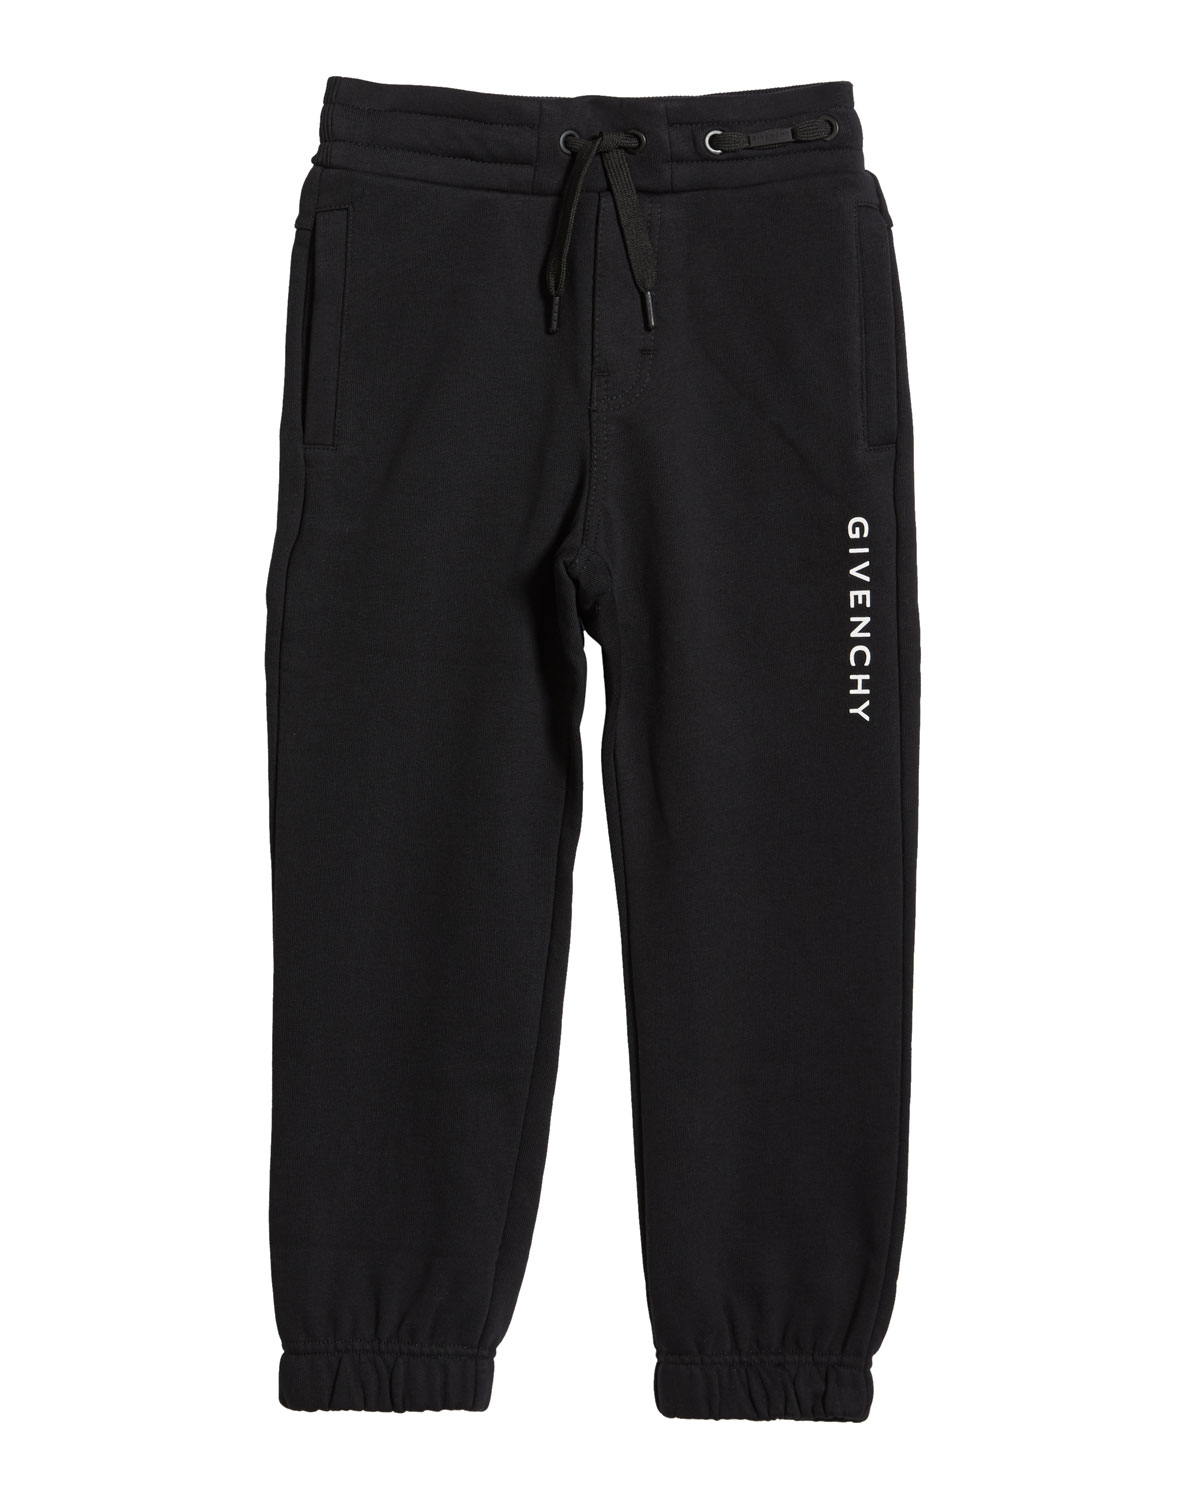 Givenchy Boy's Logo Mini Me Sweatpants, Size 6-10